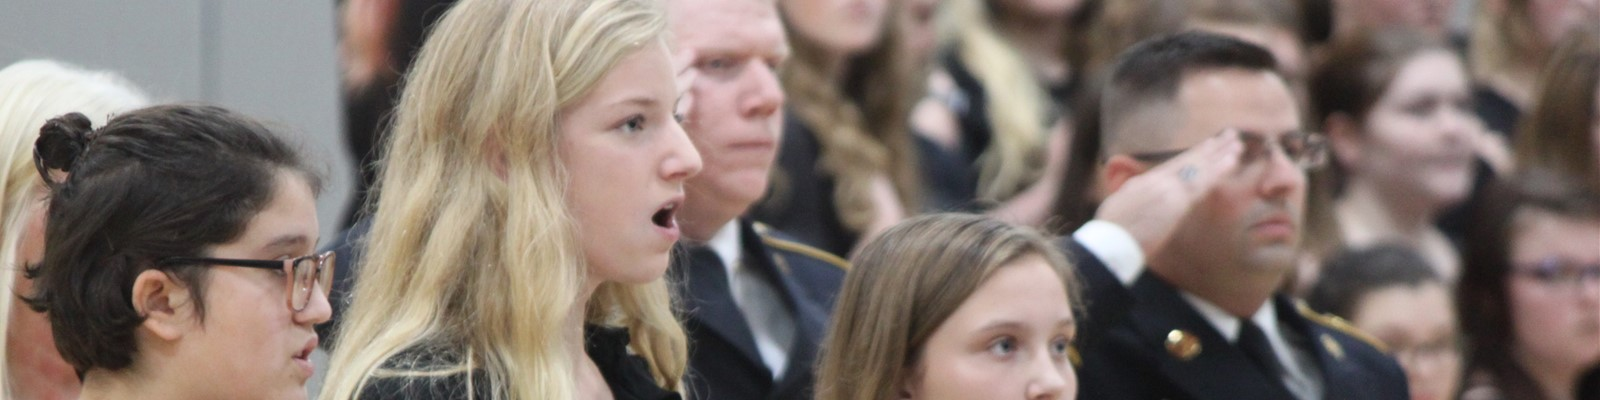 Choir at Veteran's Day